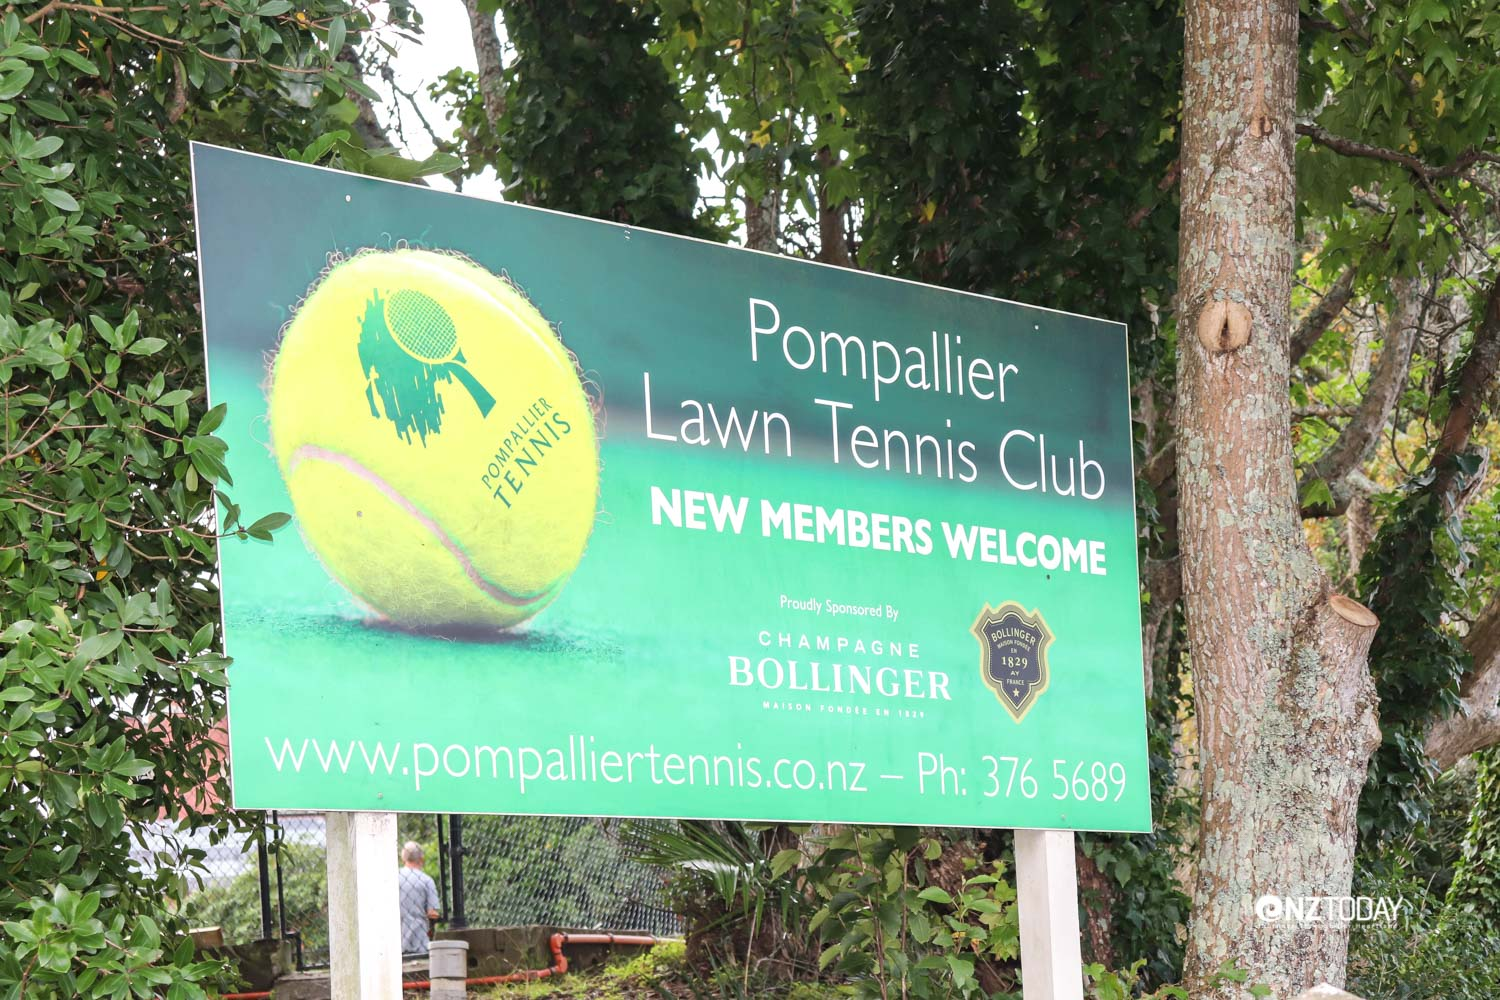 The old Bishop is still remembered in the name of the local tennis club